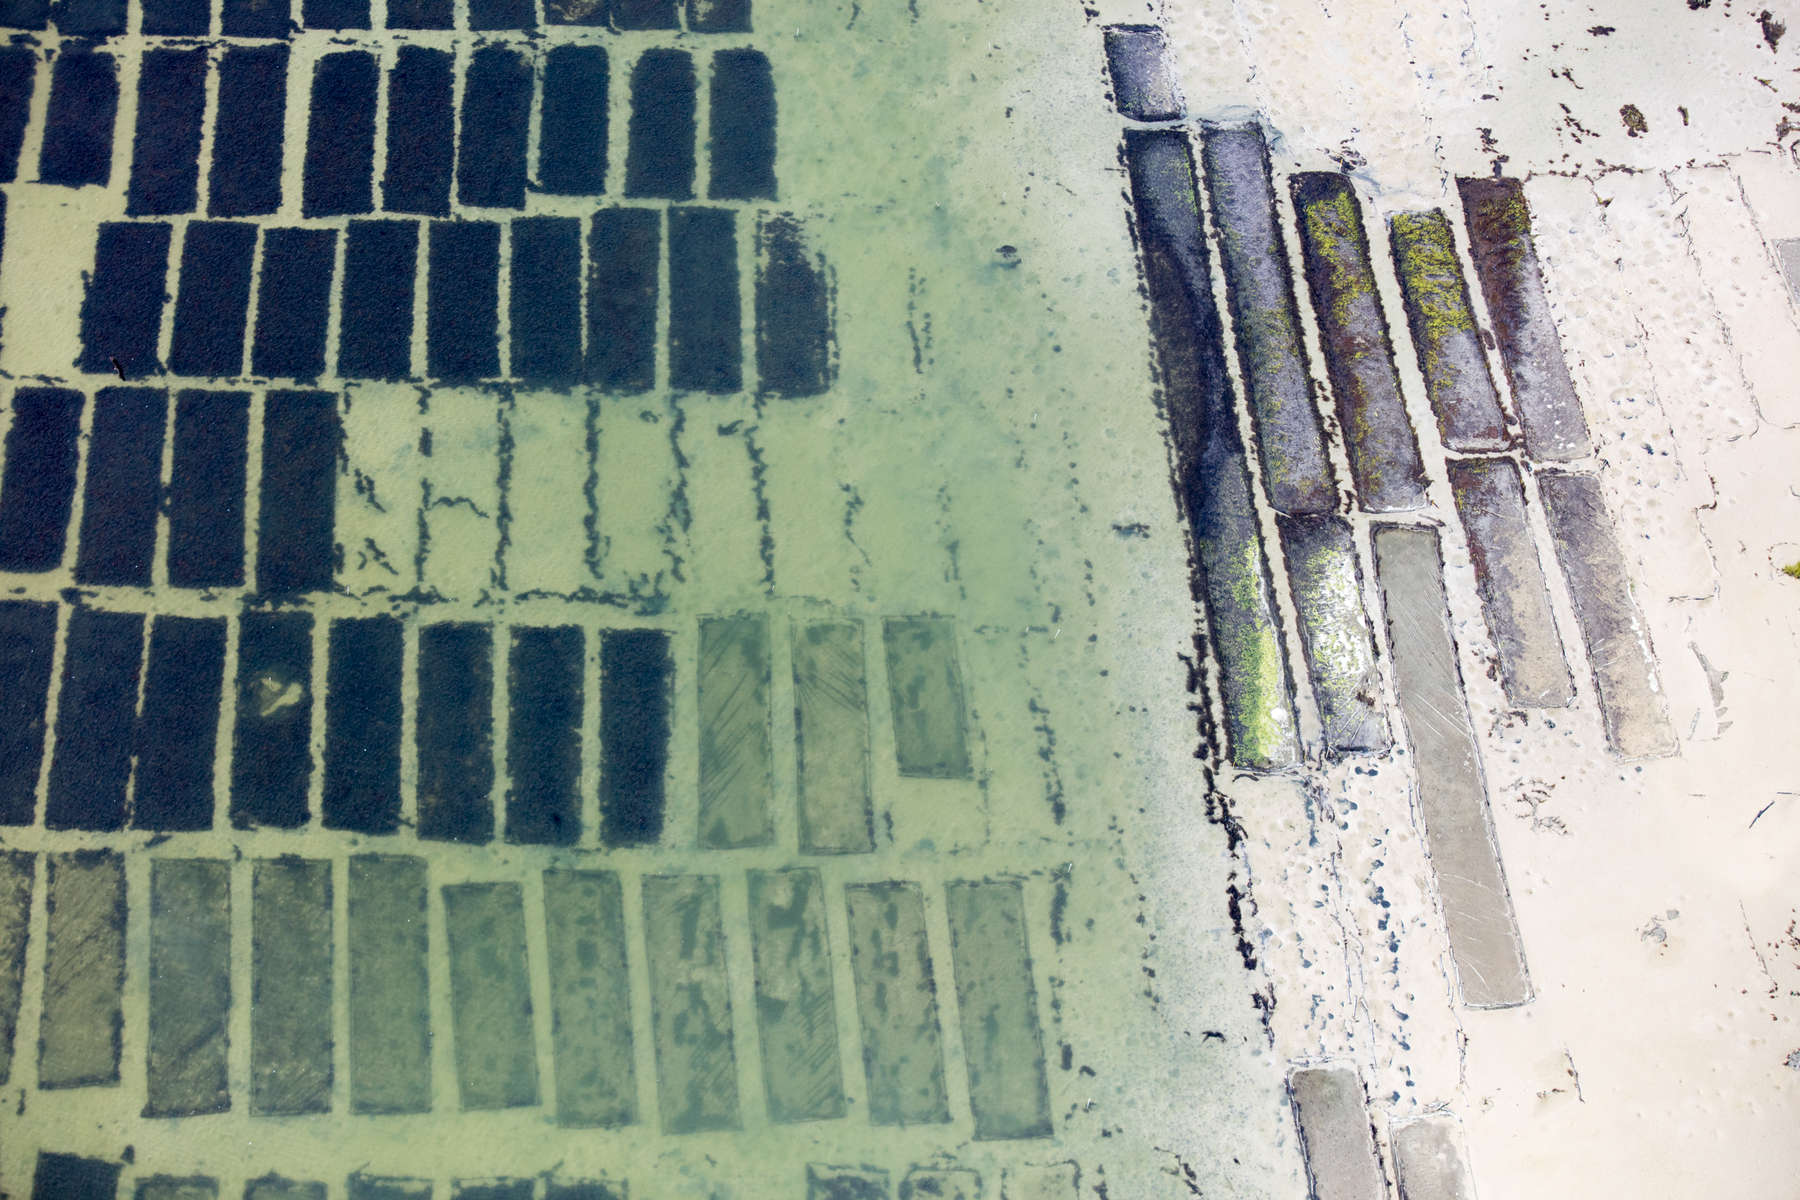 Living Oyster Beds, Cape Charles, Virginia 2018 (180905-0143)